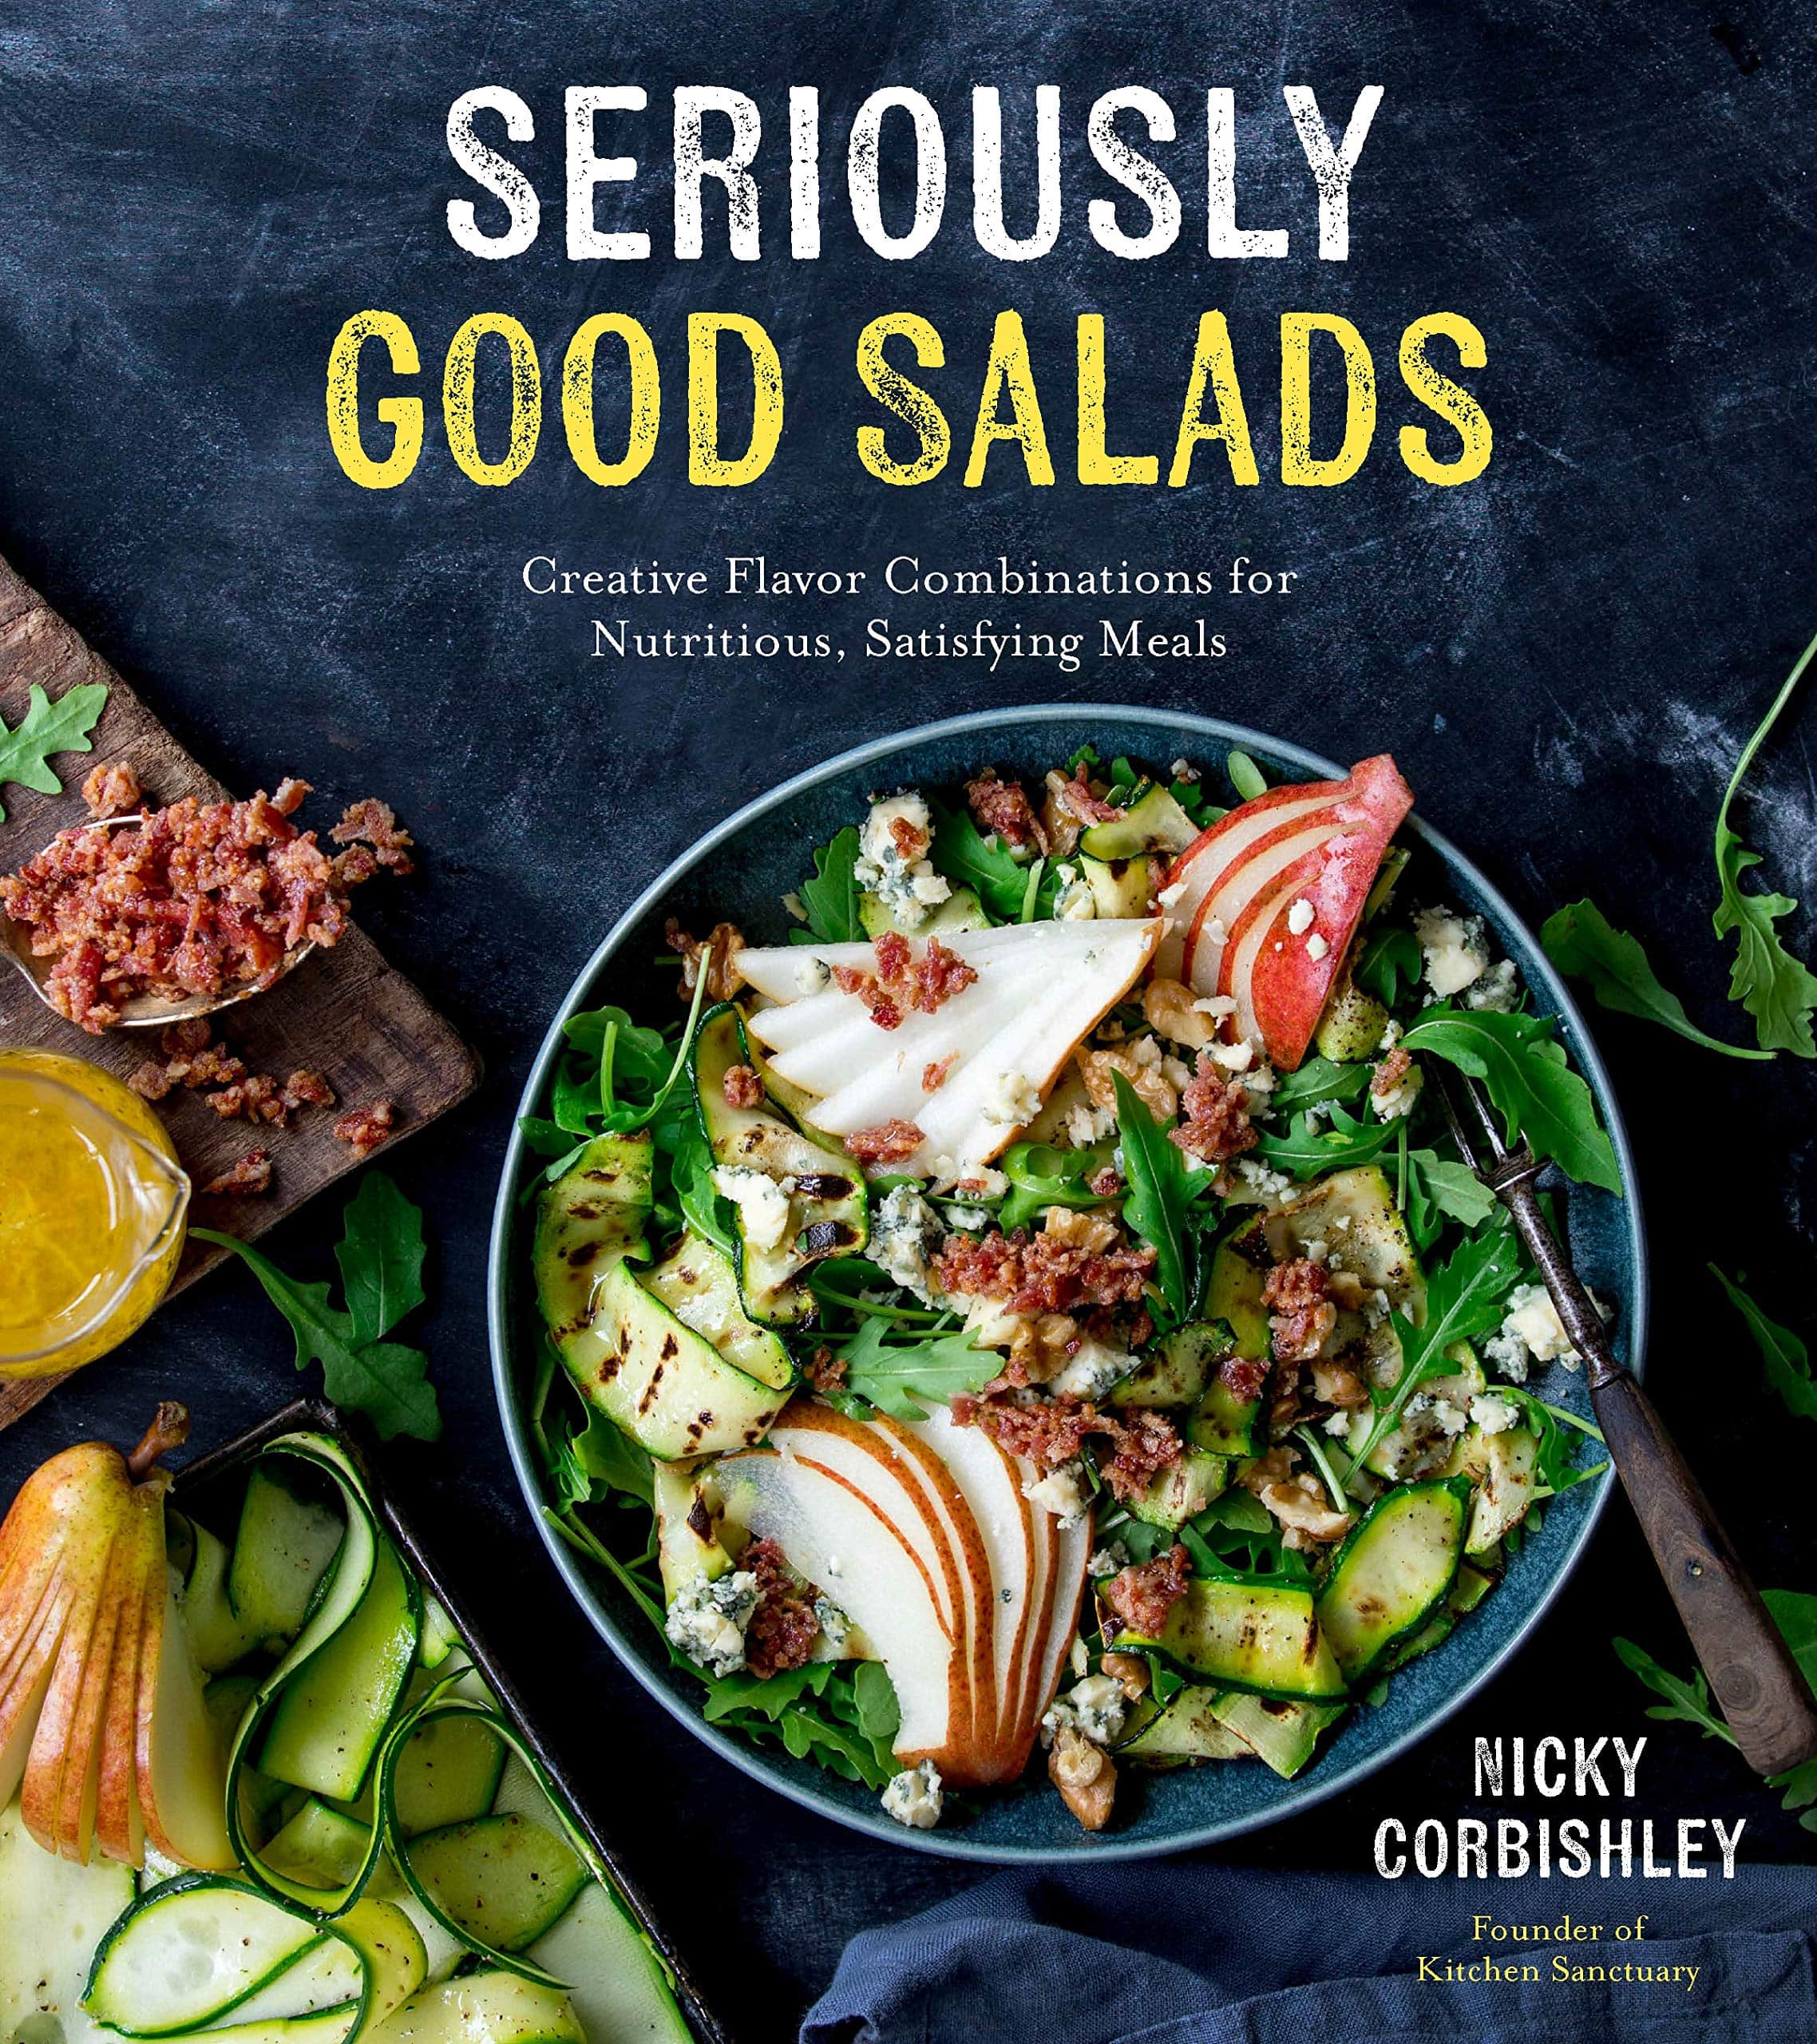 Seriously Good Salads Book Cover